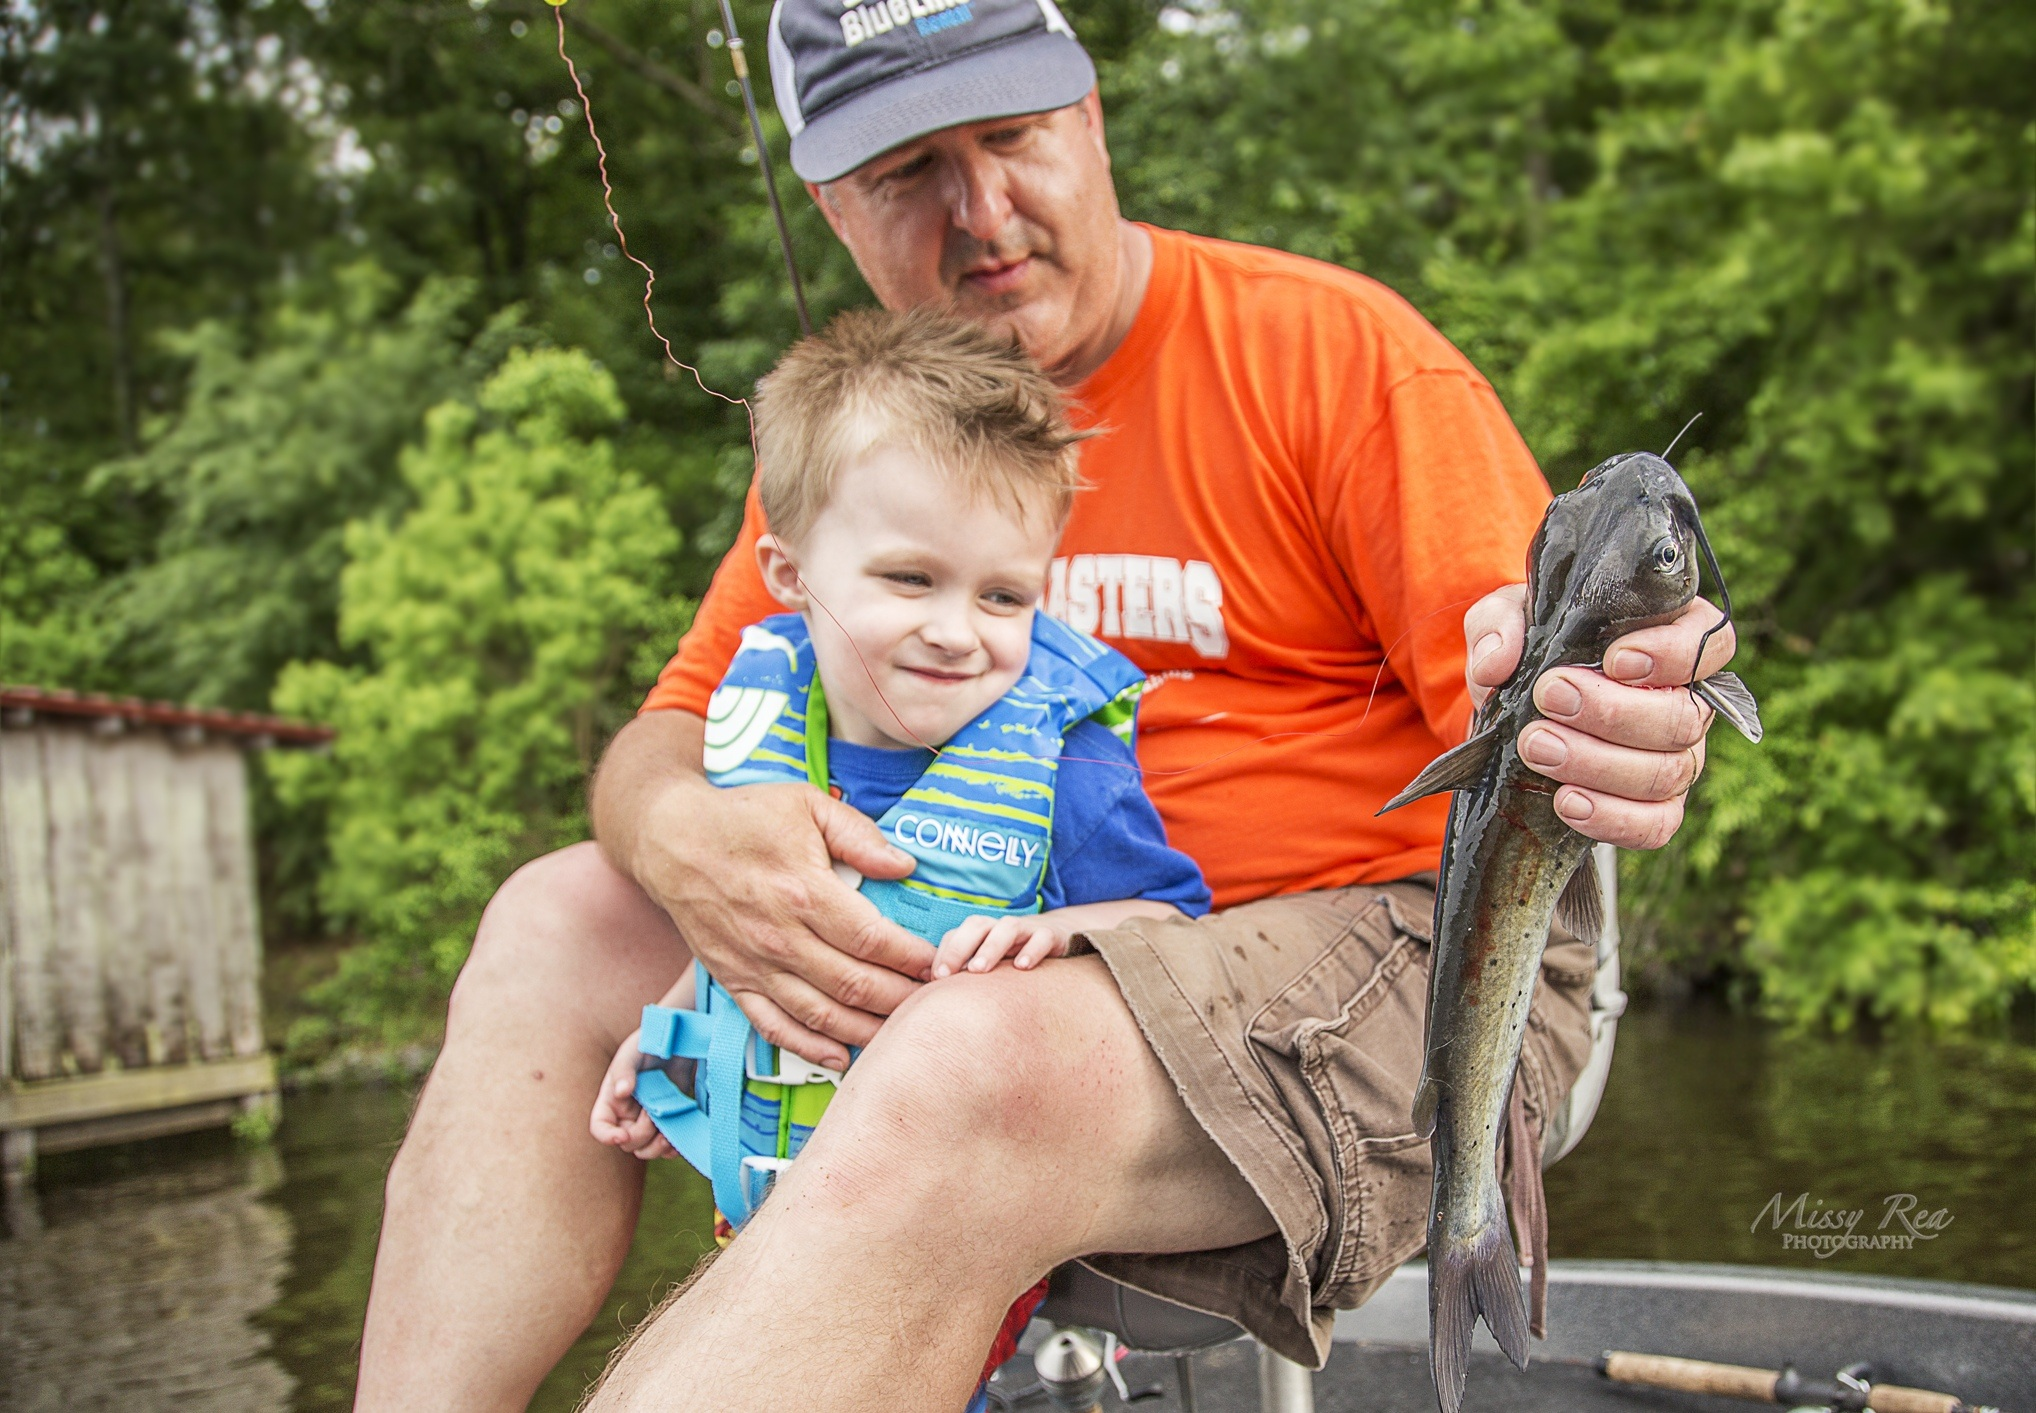 Family fun in Virginia bring fishing parks and outdoor activities for all June 2018